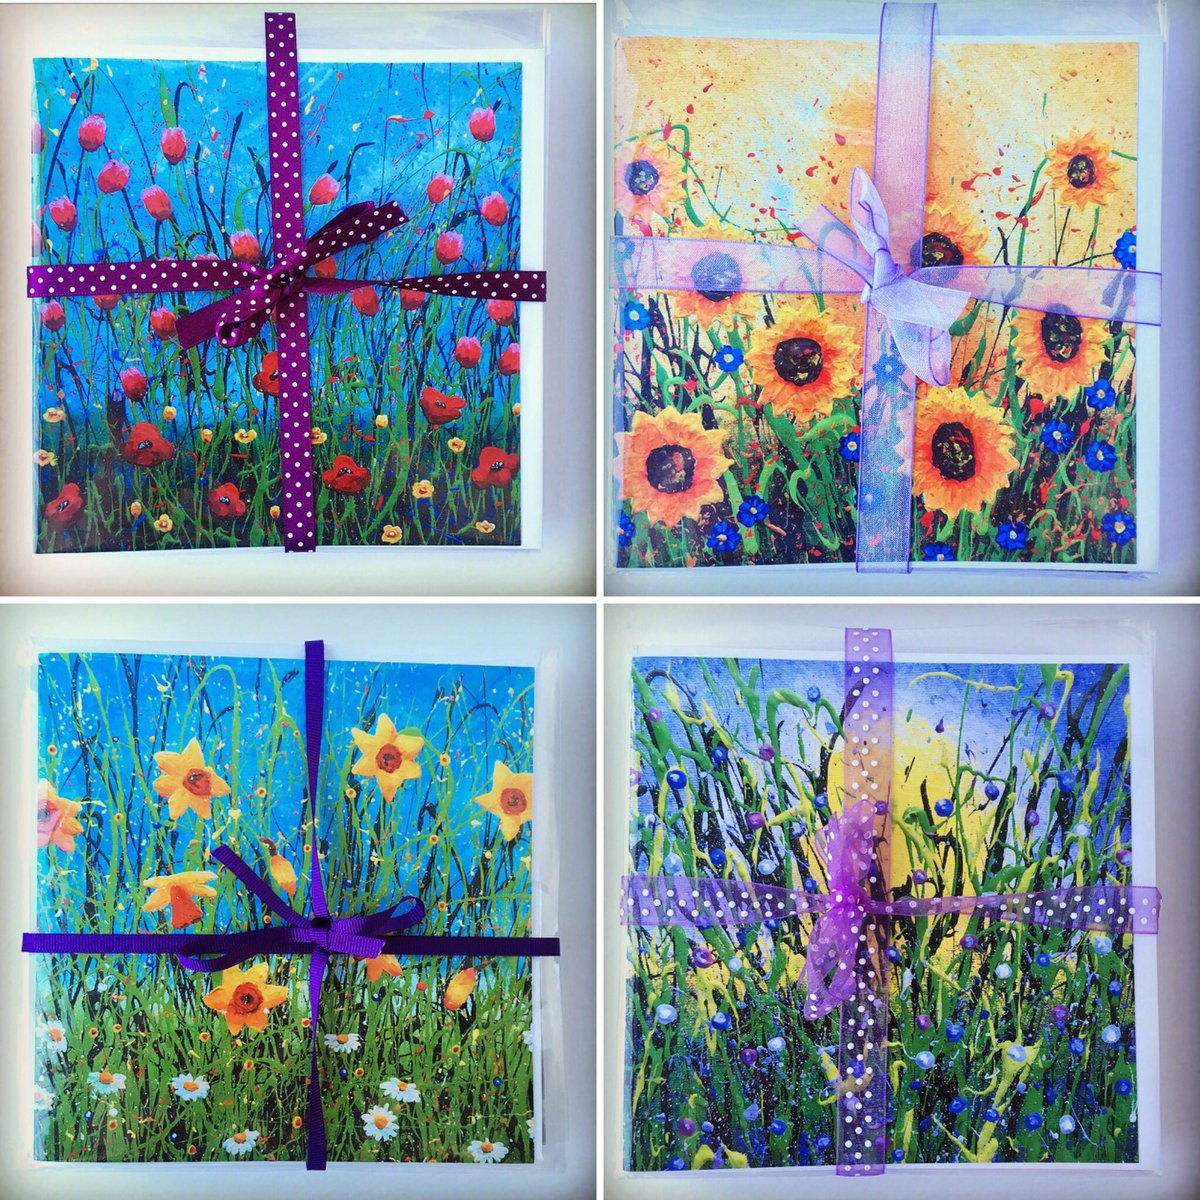 New greeting cards available on my website  http://www. artracheltrott.co.uk  &nbsp;     #greetingcards #cards #art #friday #NEW<br>http://pic.twitter.com/xctPVnTOVm